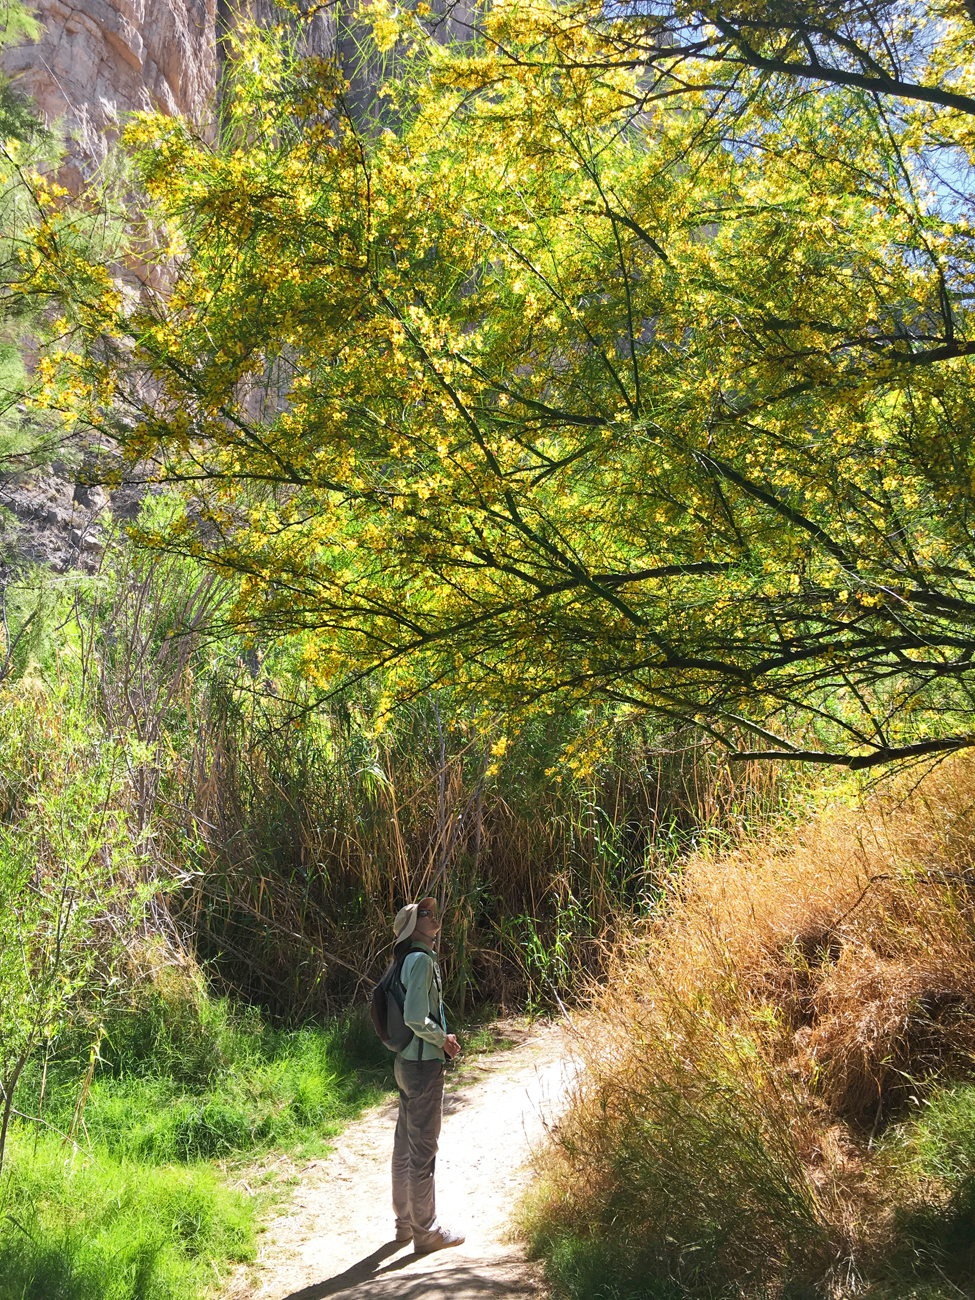 Christina peering up into a blooming Palo Verde on the Santa Elena Canyon Trail